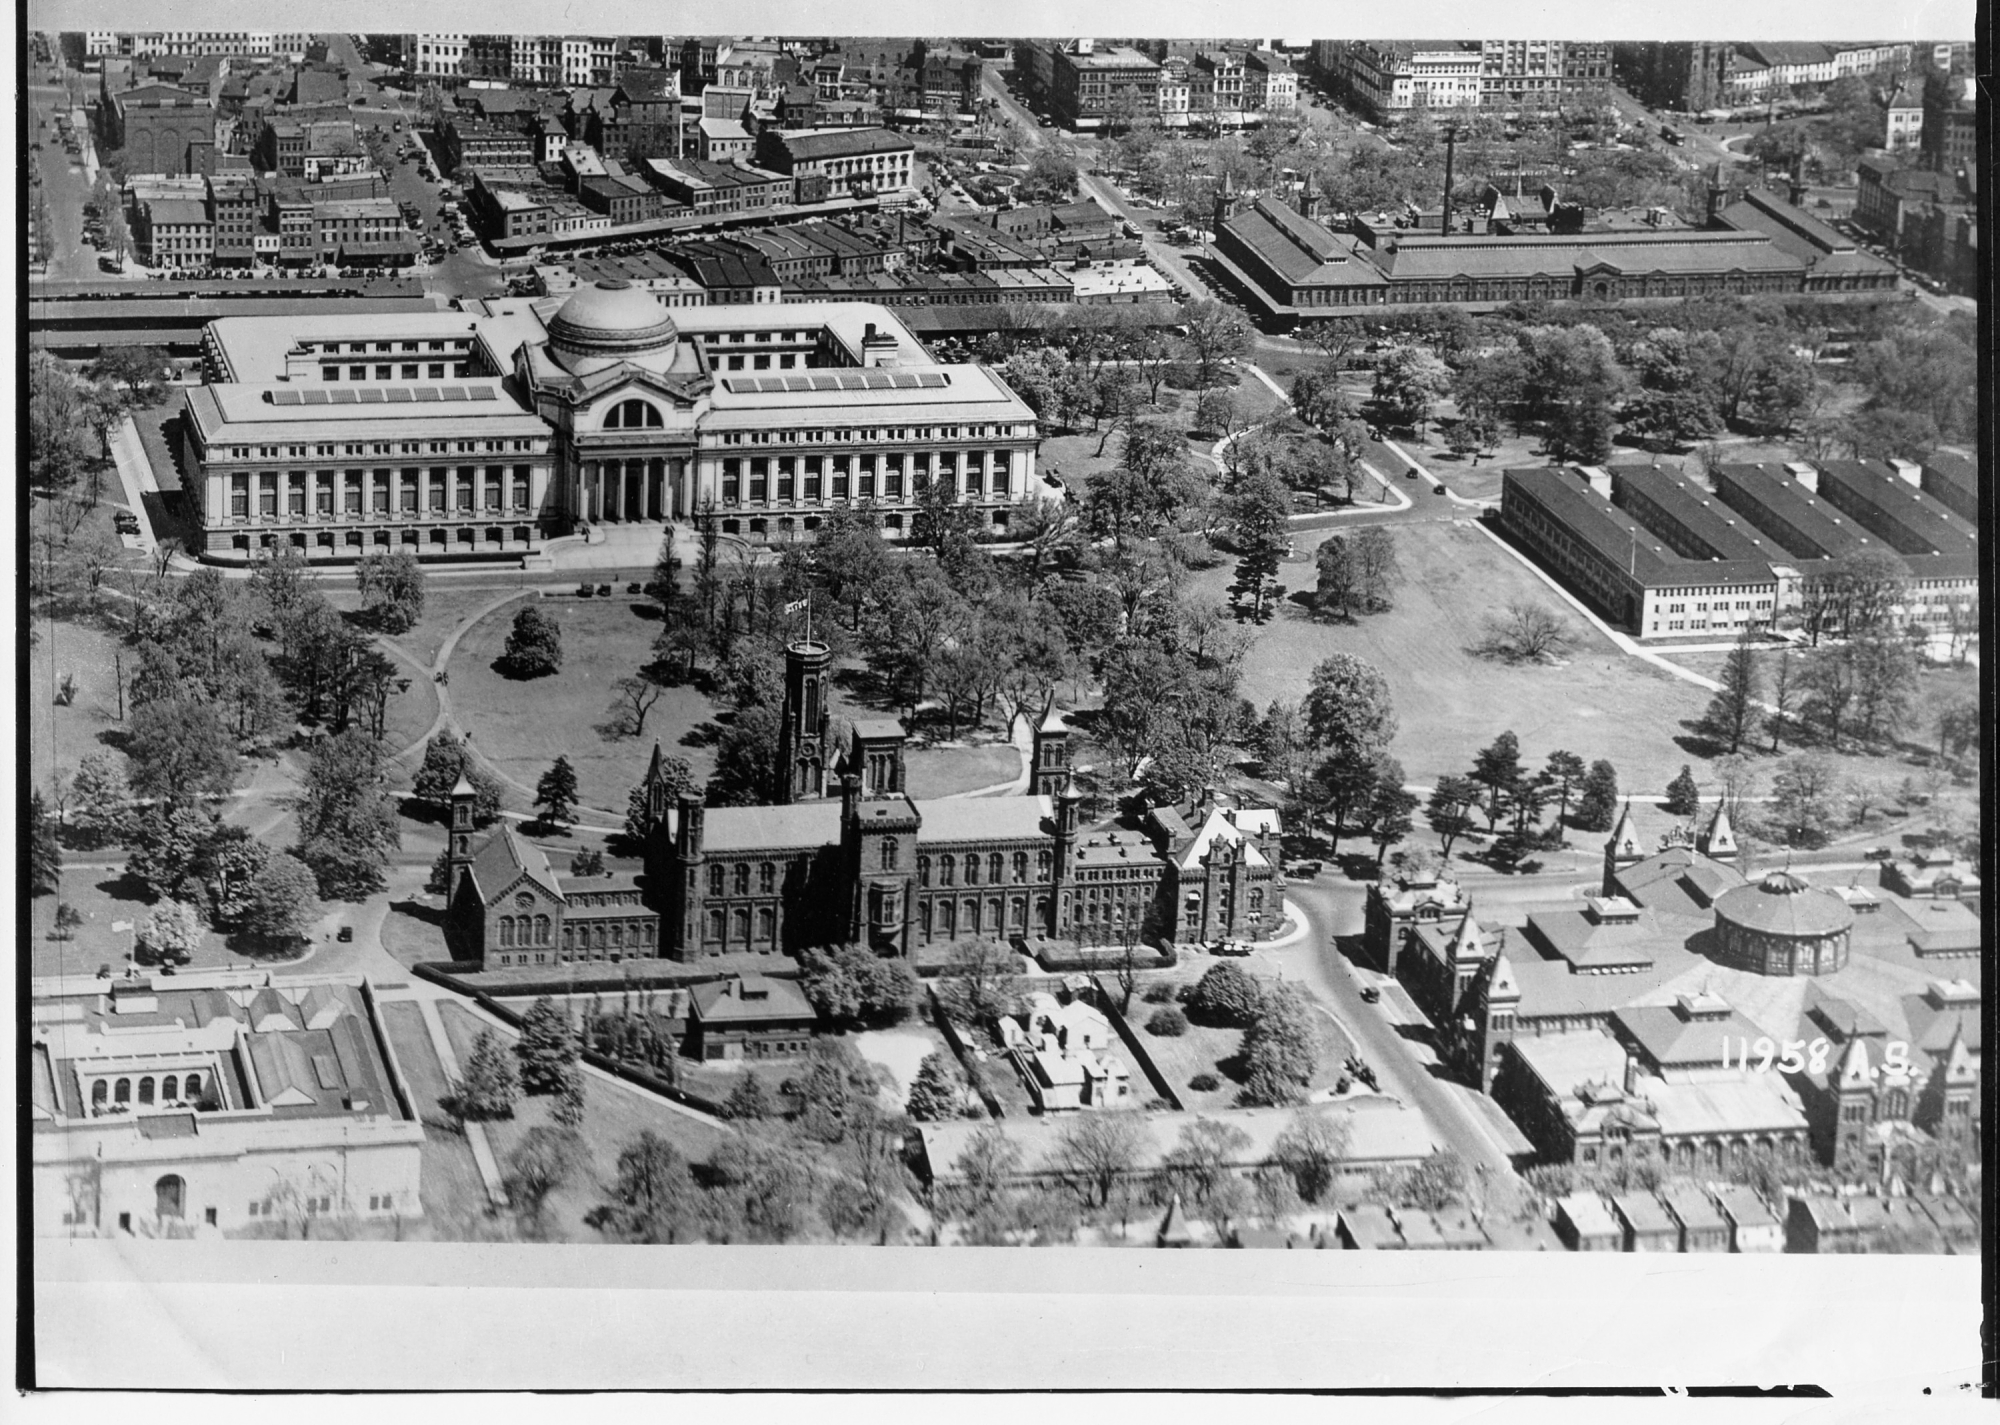 Aerial view of the Smithsonian Institution Building and Natural History building, 1932.